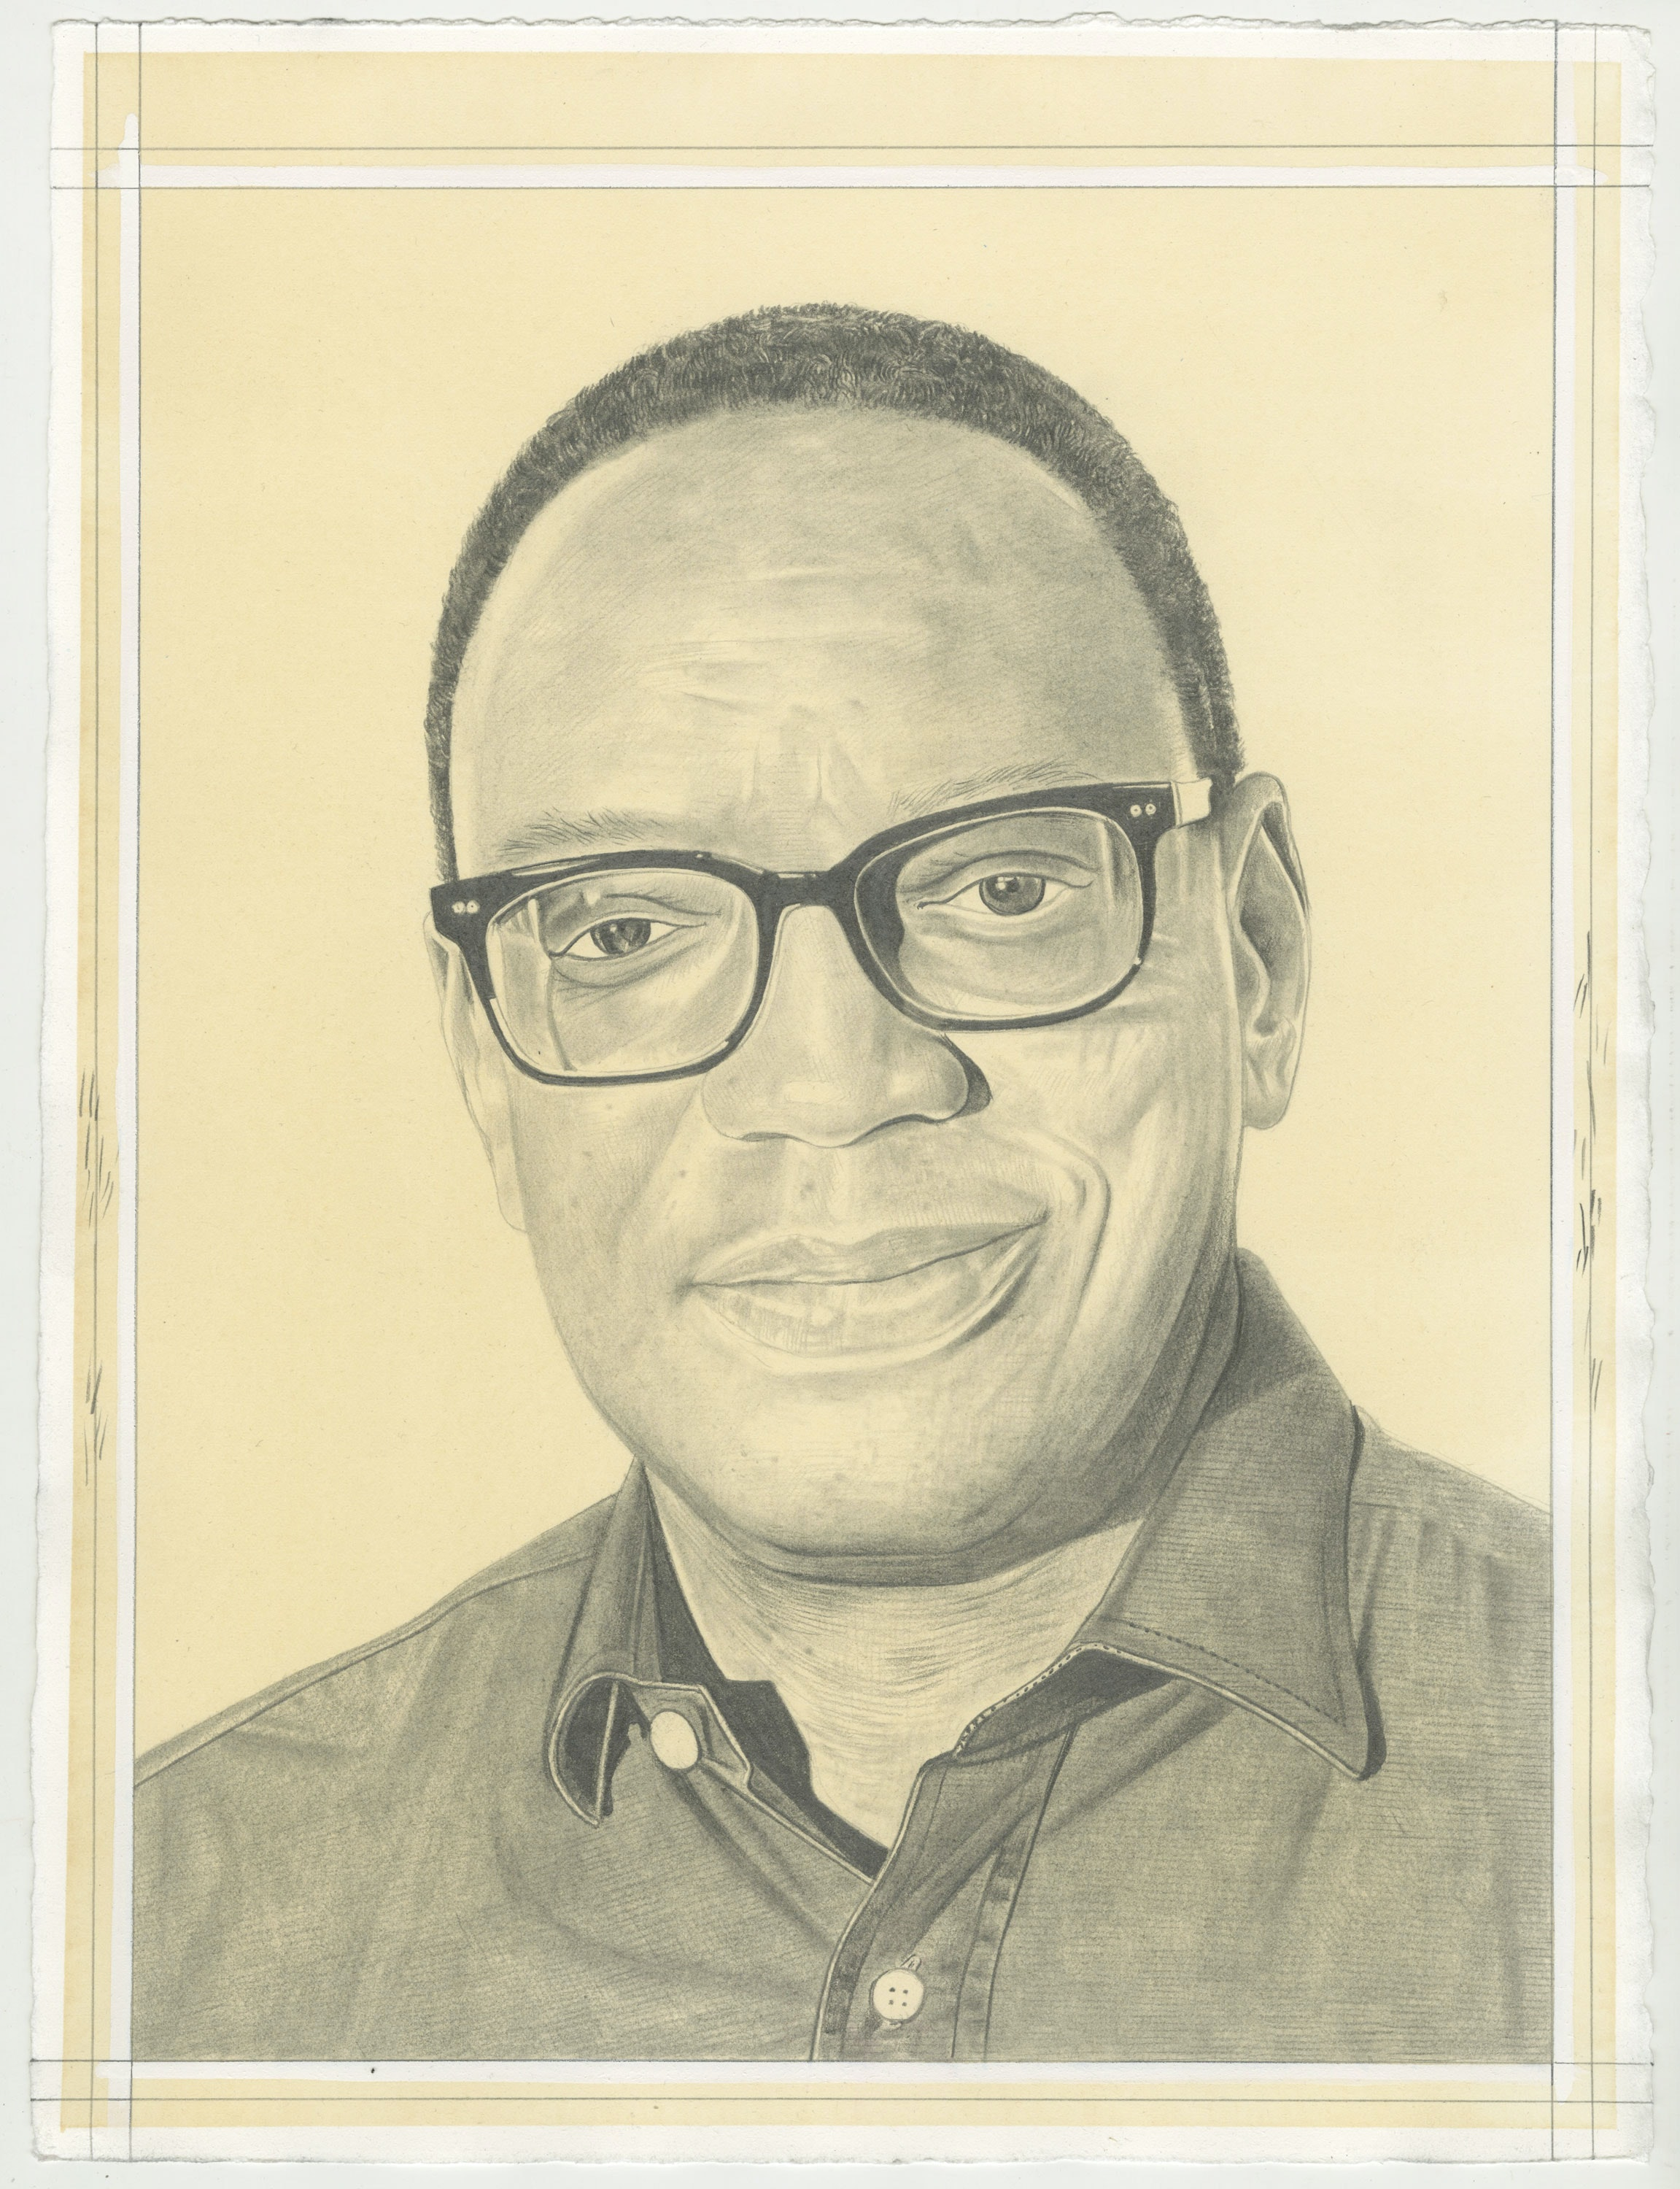 Portrait of Alvin Hall. Pencil on paper by Phong H. Bui